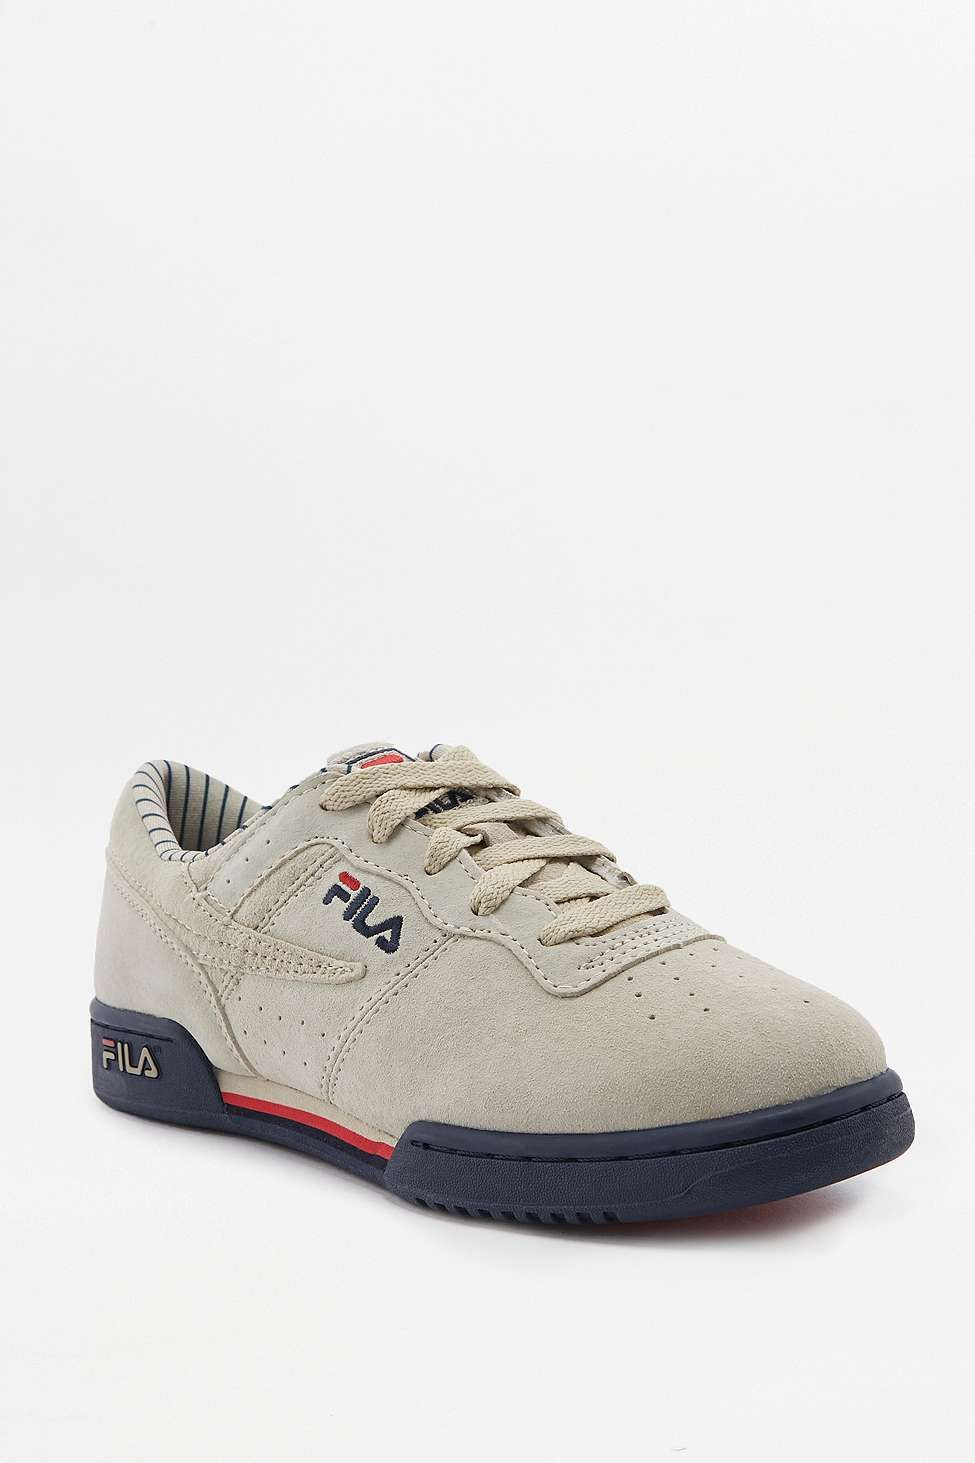 FILA Original Fitness Off-White Pinstripe Trainers